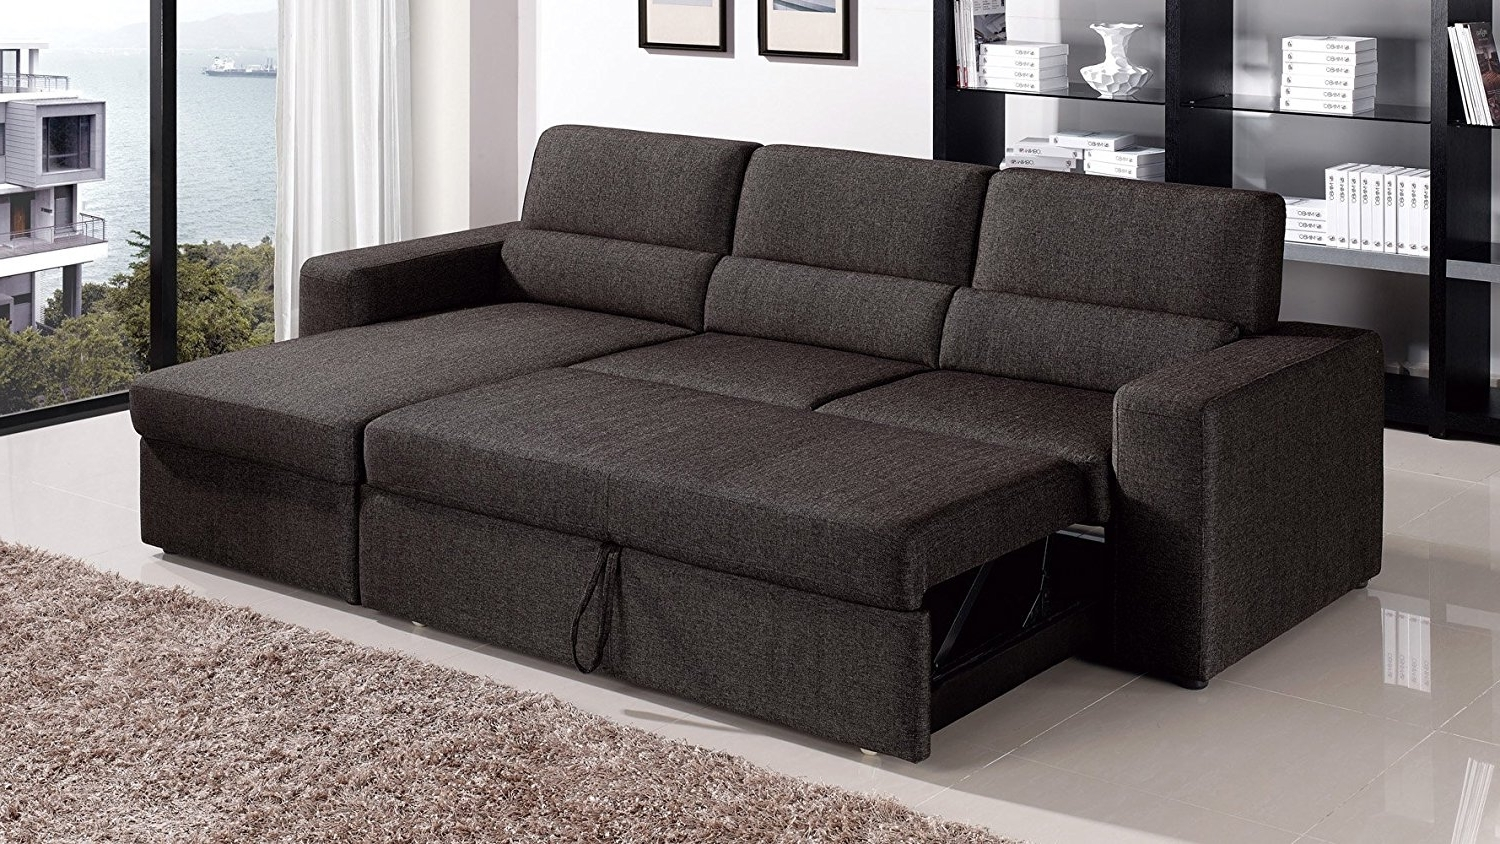 Well Known Sleeper Sofas With Storage Chaise Throughout Amazon: Black/brown Clubber Sleeper Sectional Sofa – Right (View 15 of 15)